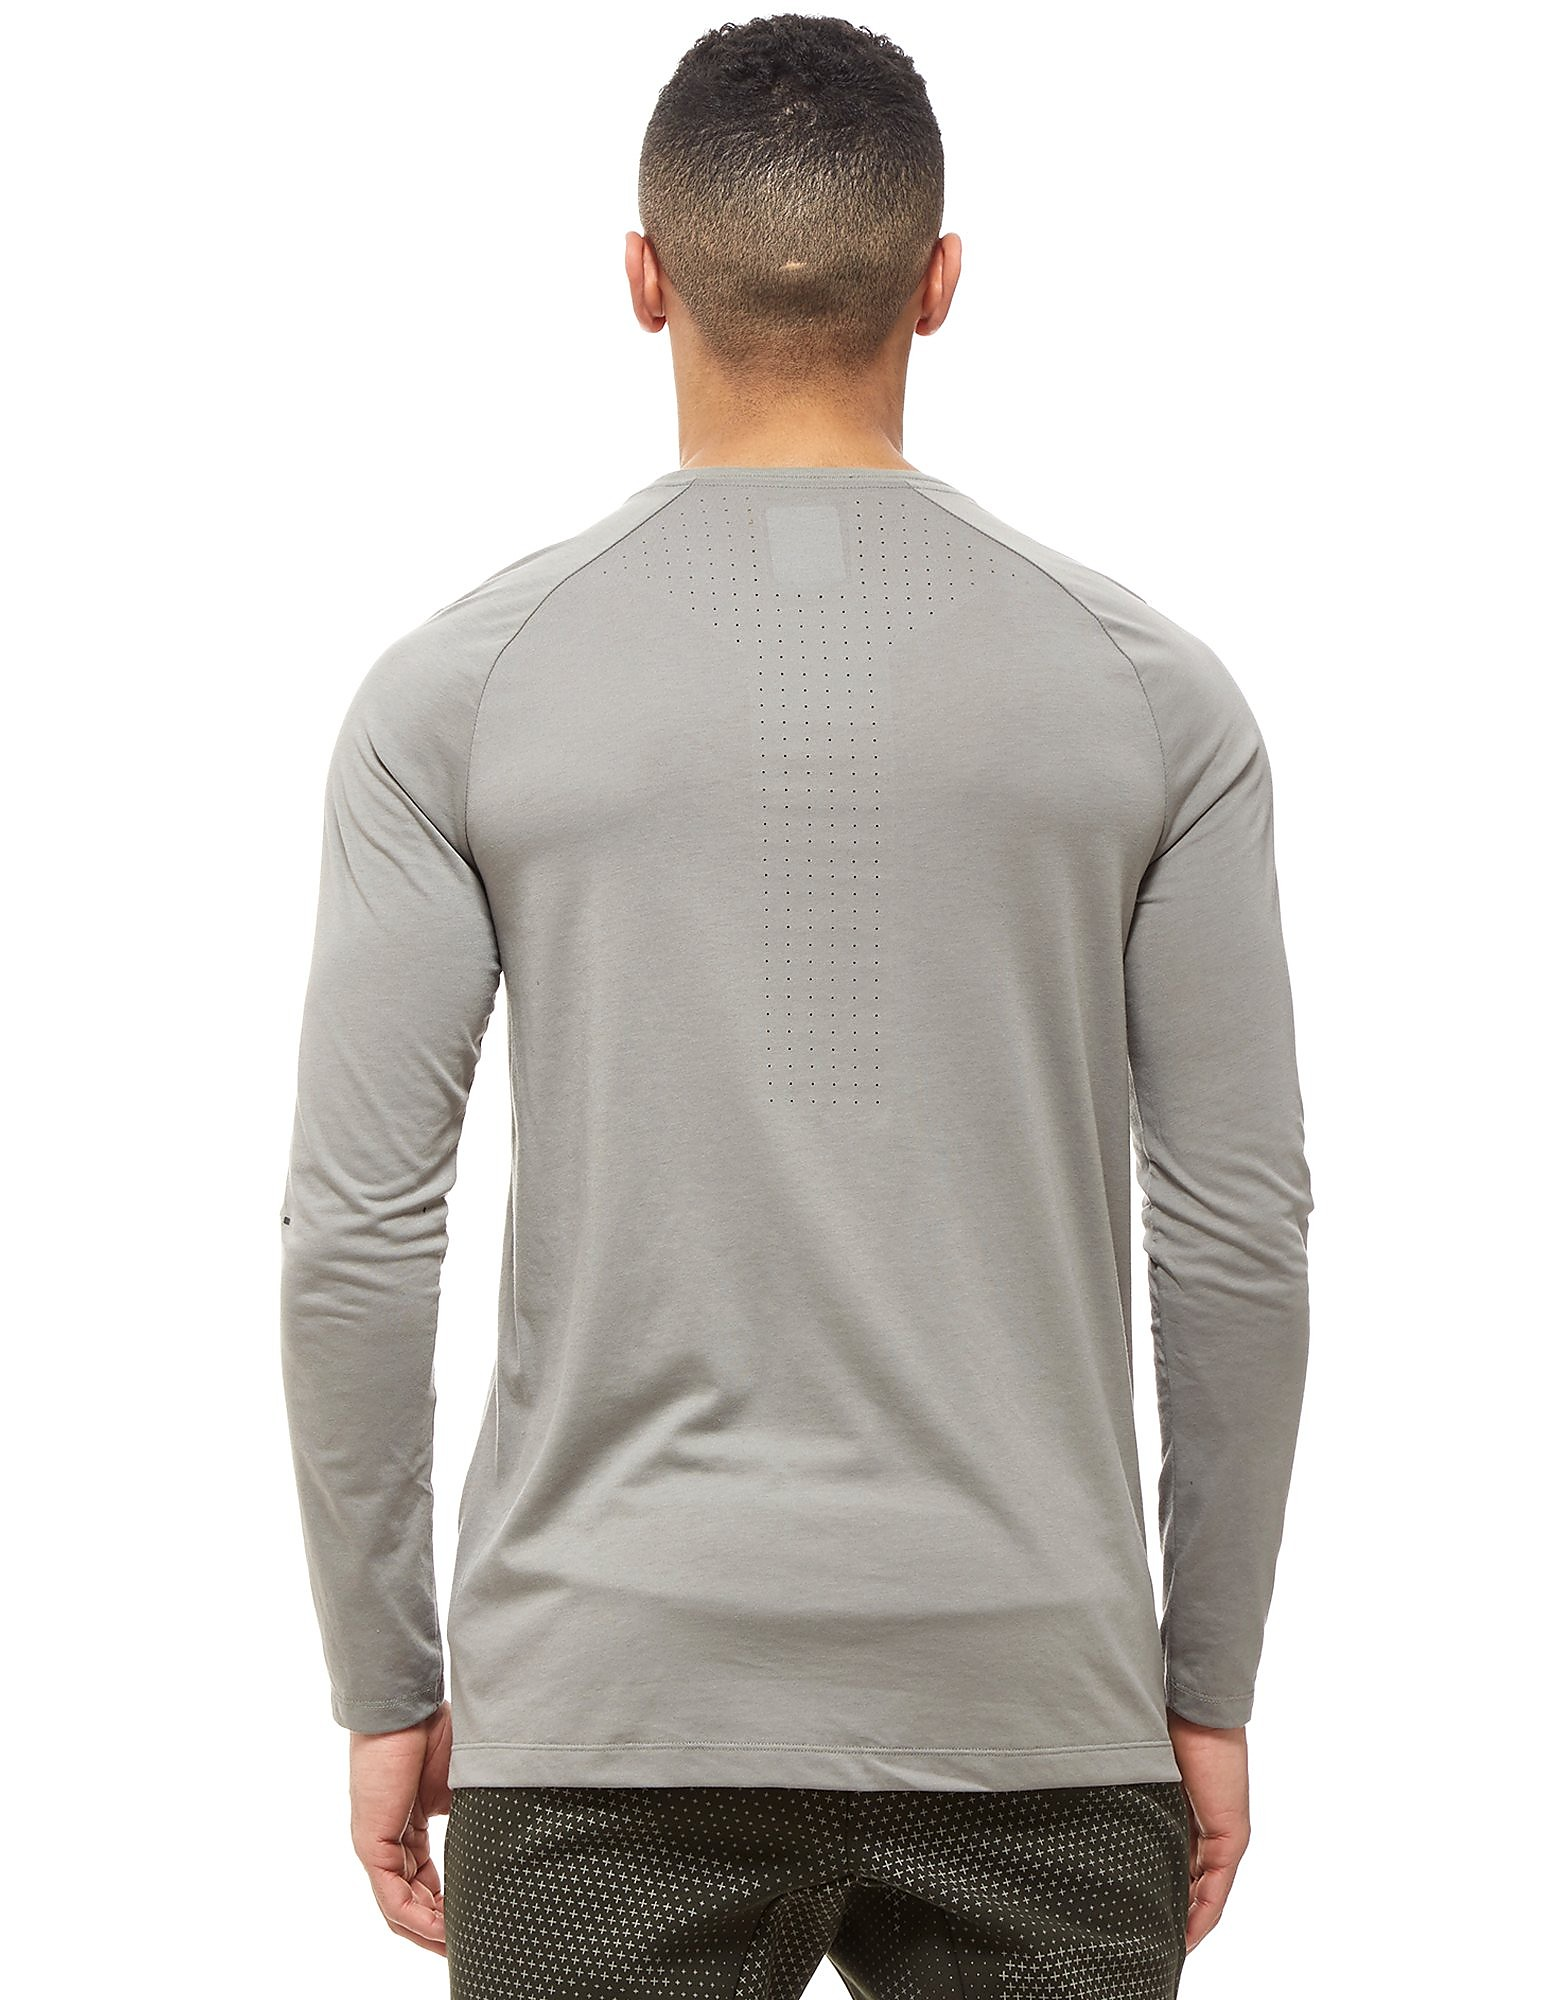 Nike Tech Long Sleeve T-Shirt